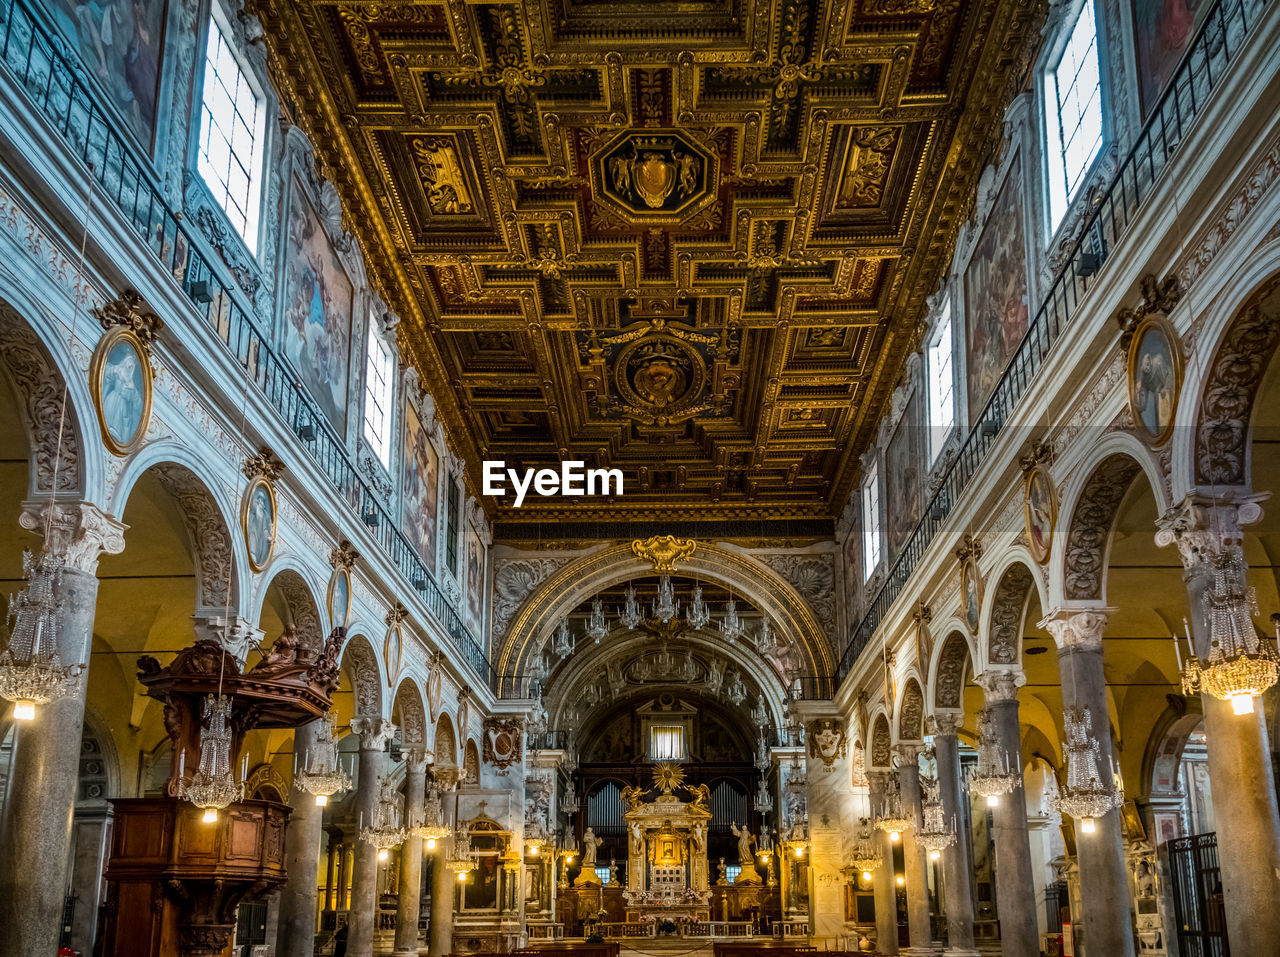 architecture, built structure, travel destinations, building exterior, place of worship, the past, belief, illuminated, history, low angle view, religion, spirituality, lighting equipment, ceiling, building, arch, travel, architectural column, no people, ornate, luxury, mural